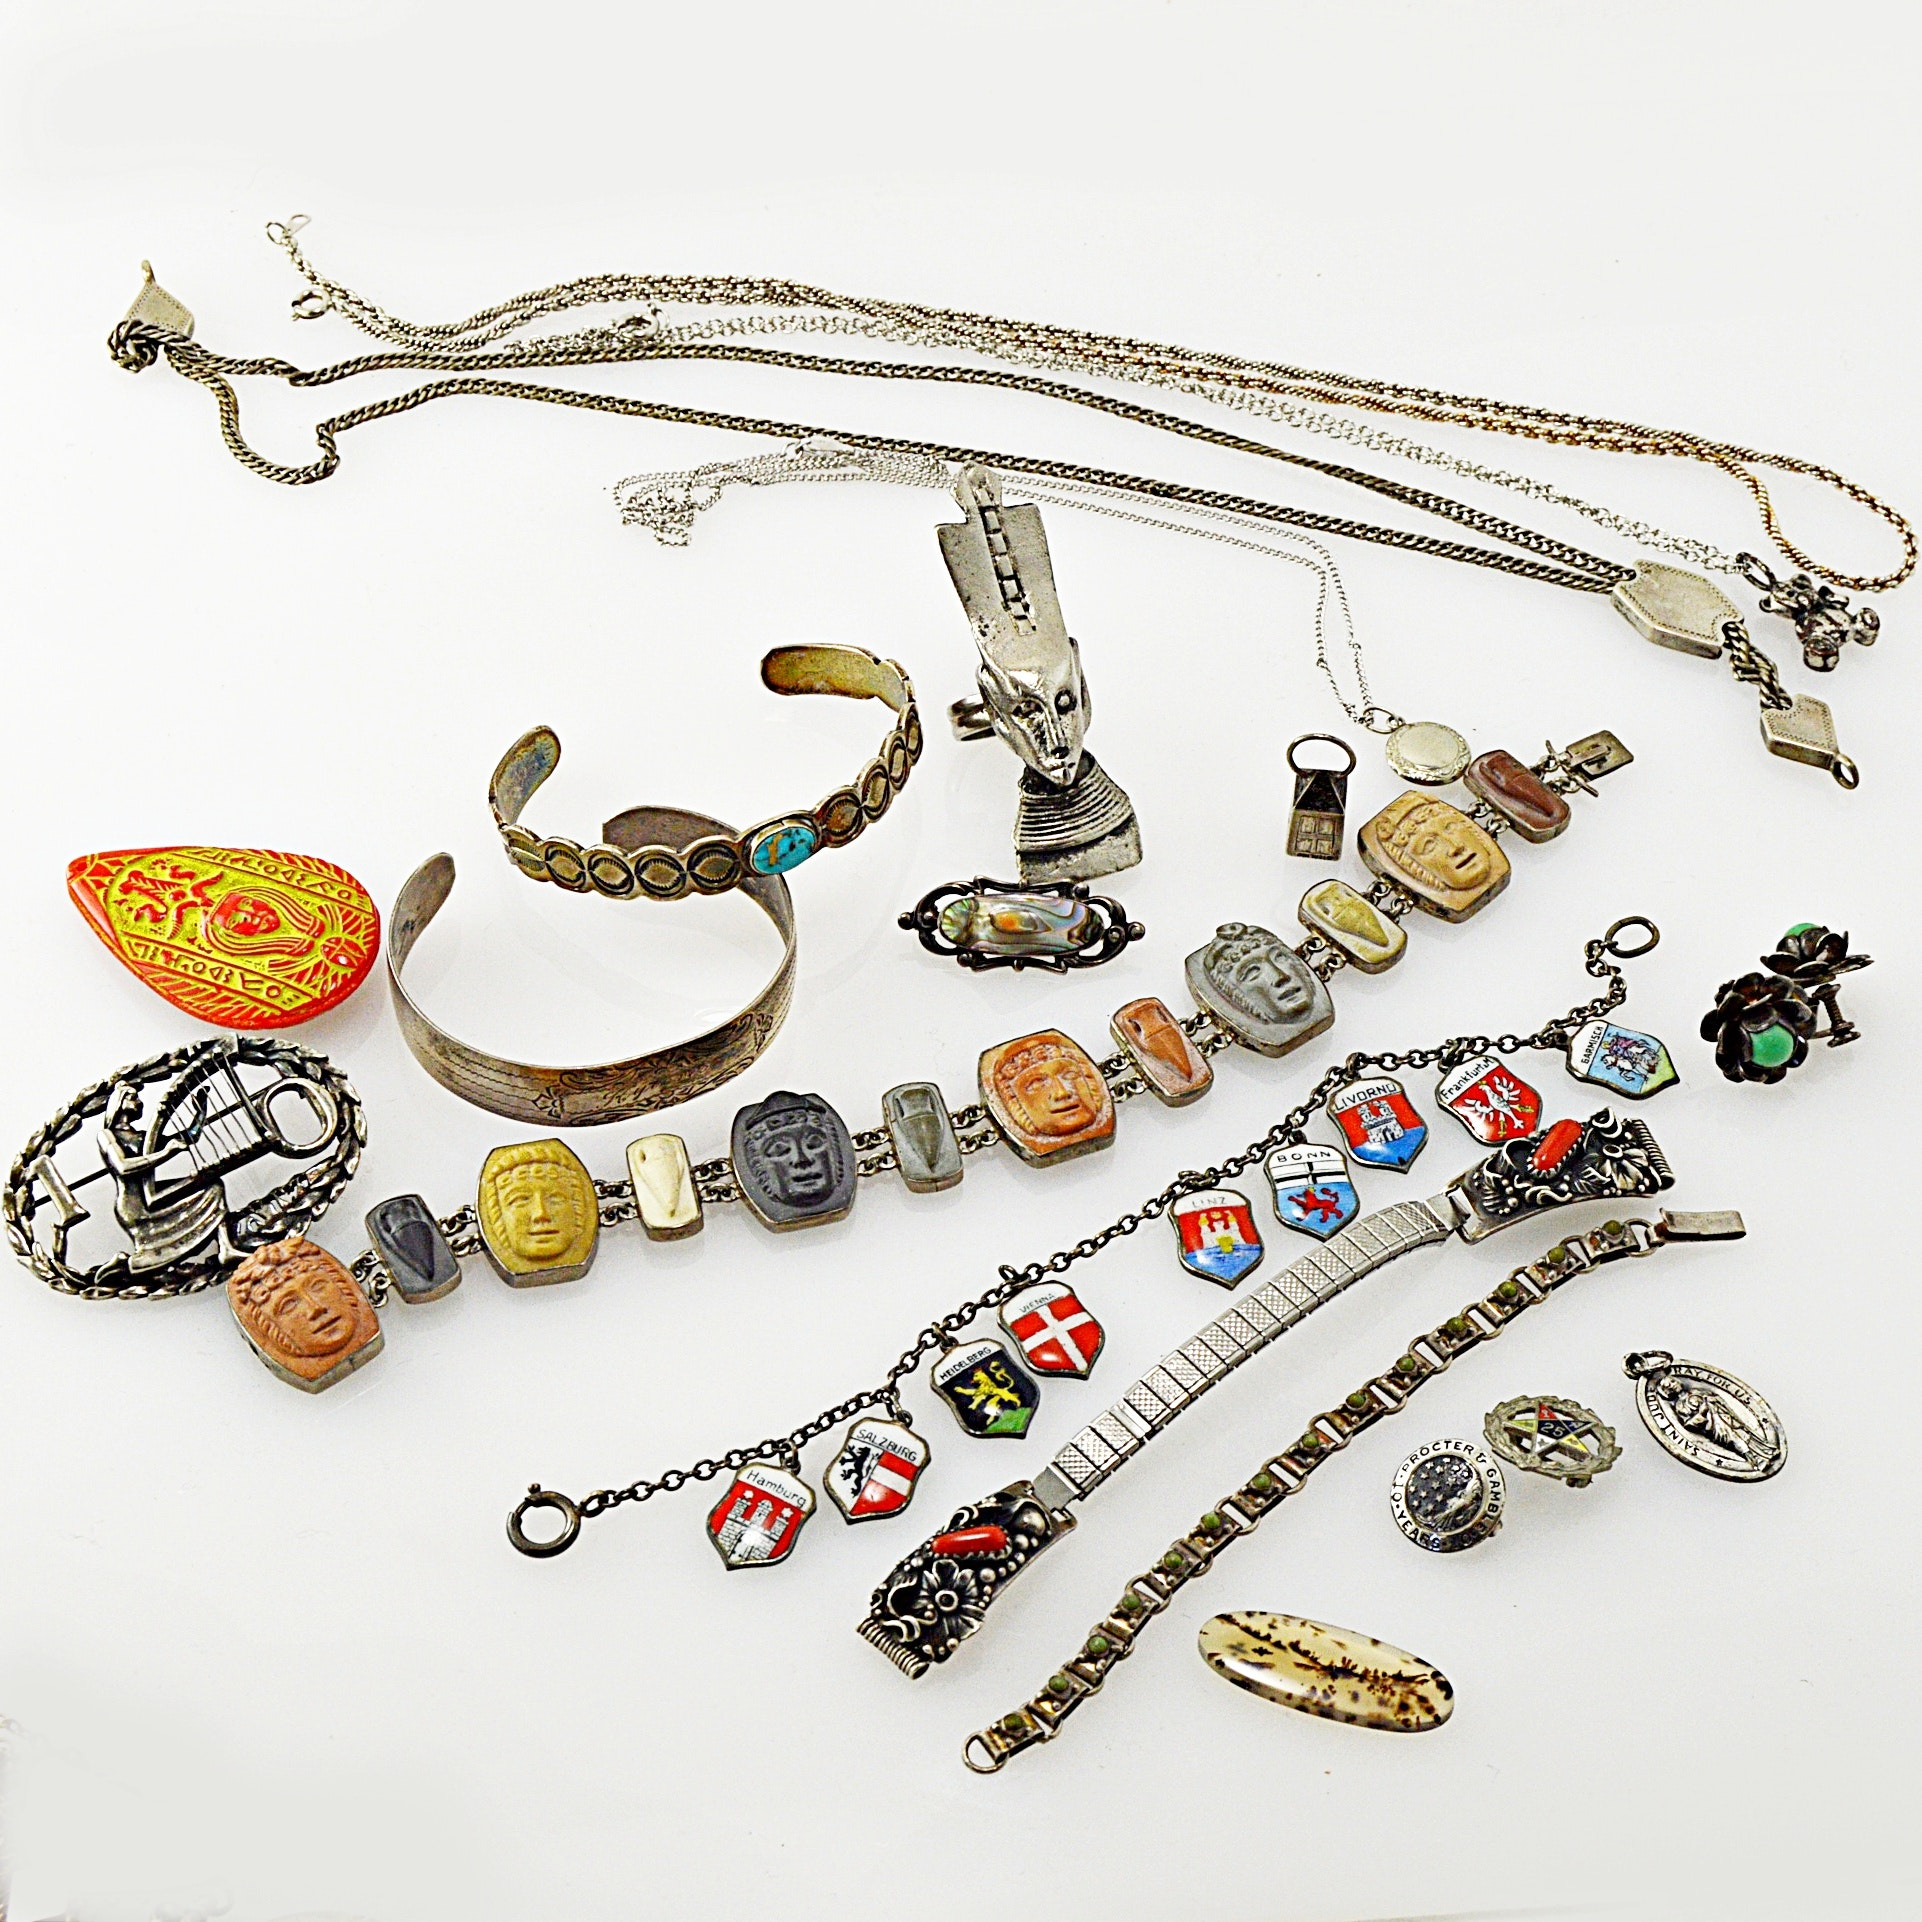 Vintage Sterling Silver, 10K Gold, 800 and Silver Tone Jewelry